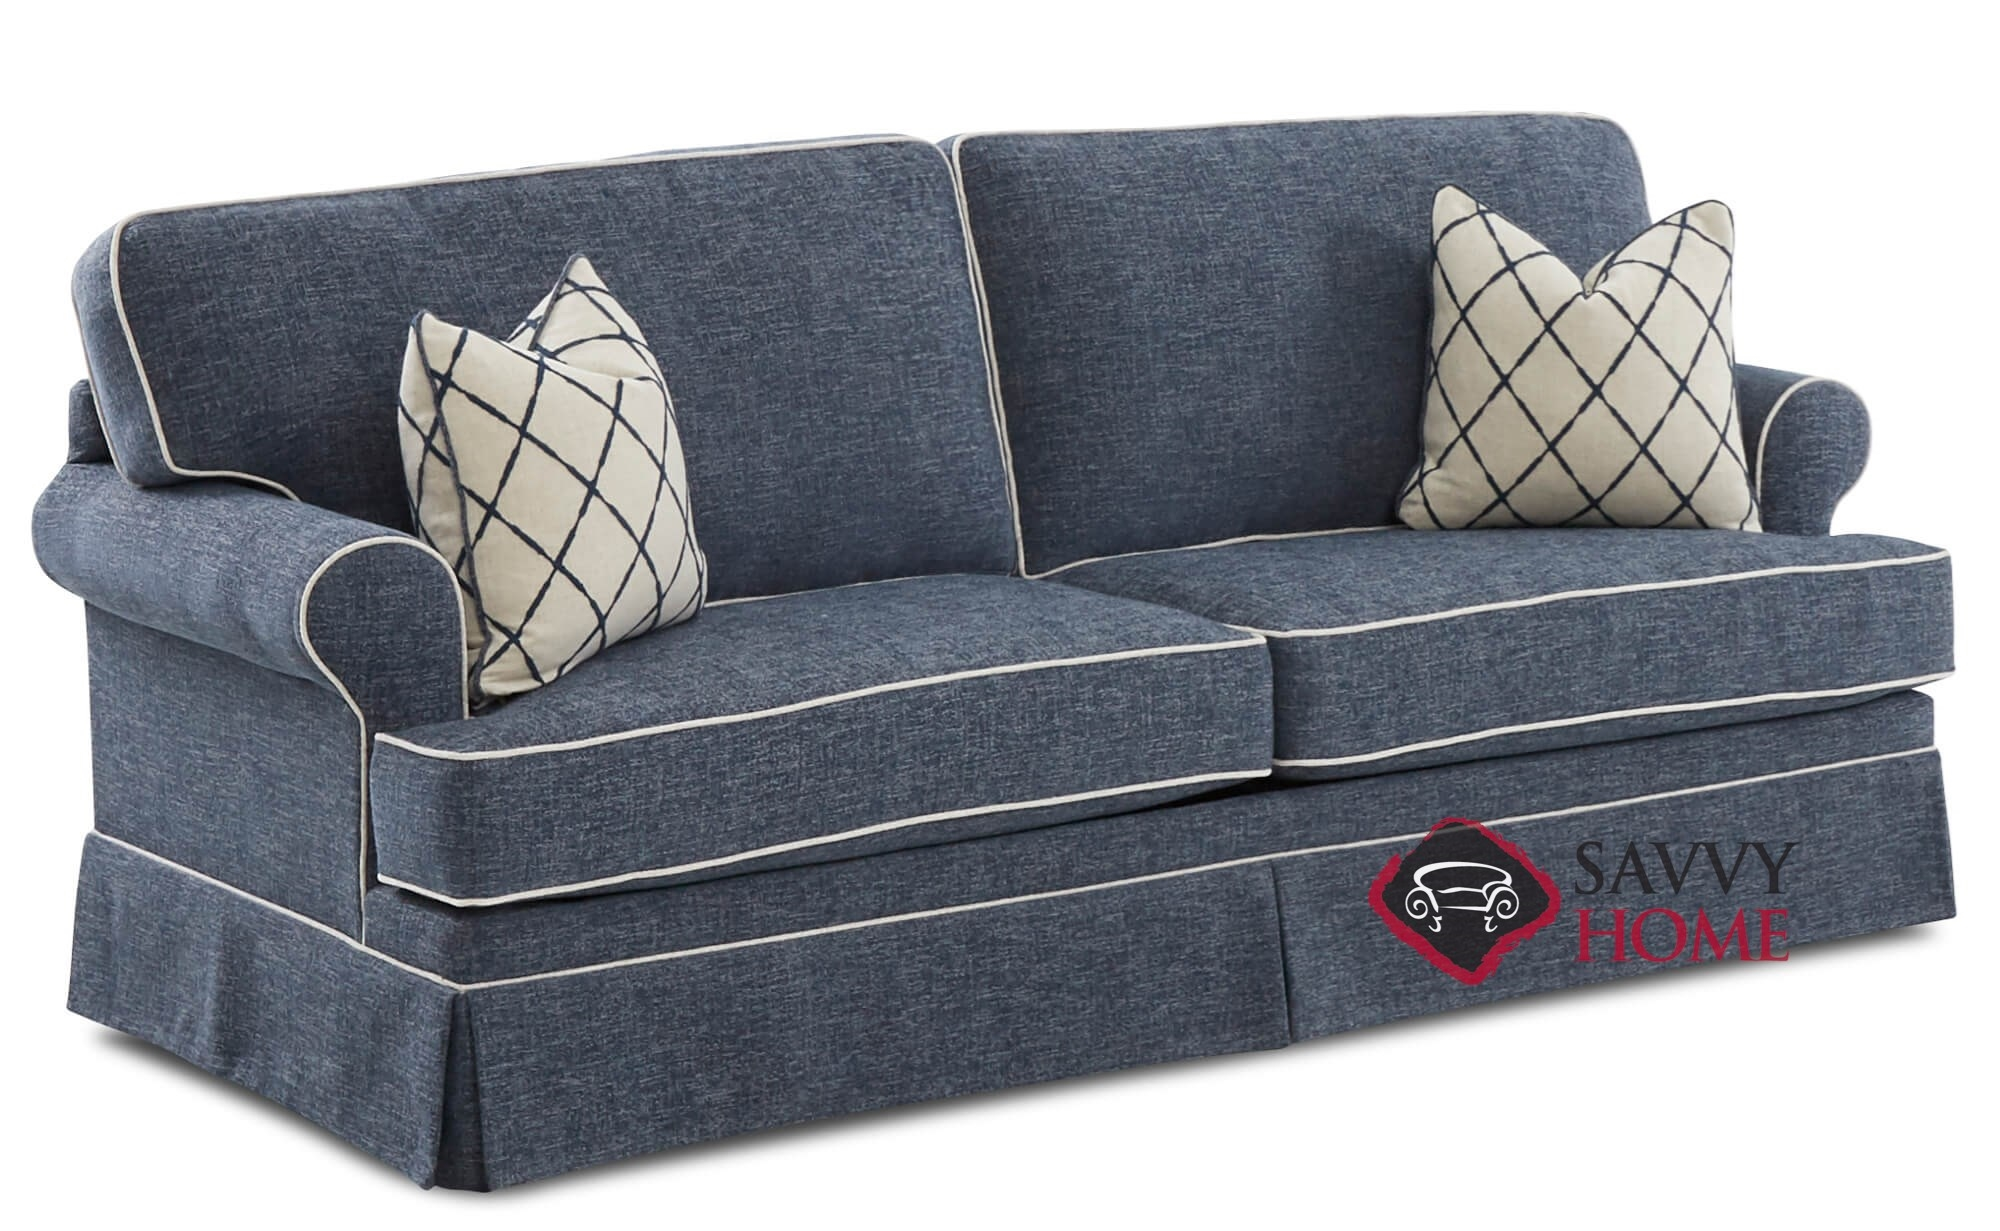 Queen Sofa Bed Cranston Queen Sofa Bed By Savvy